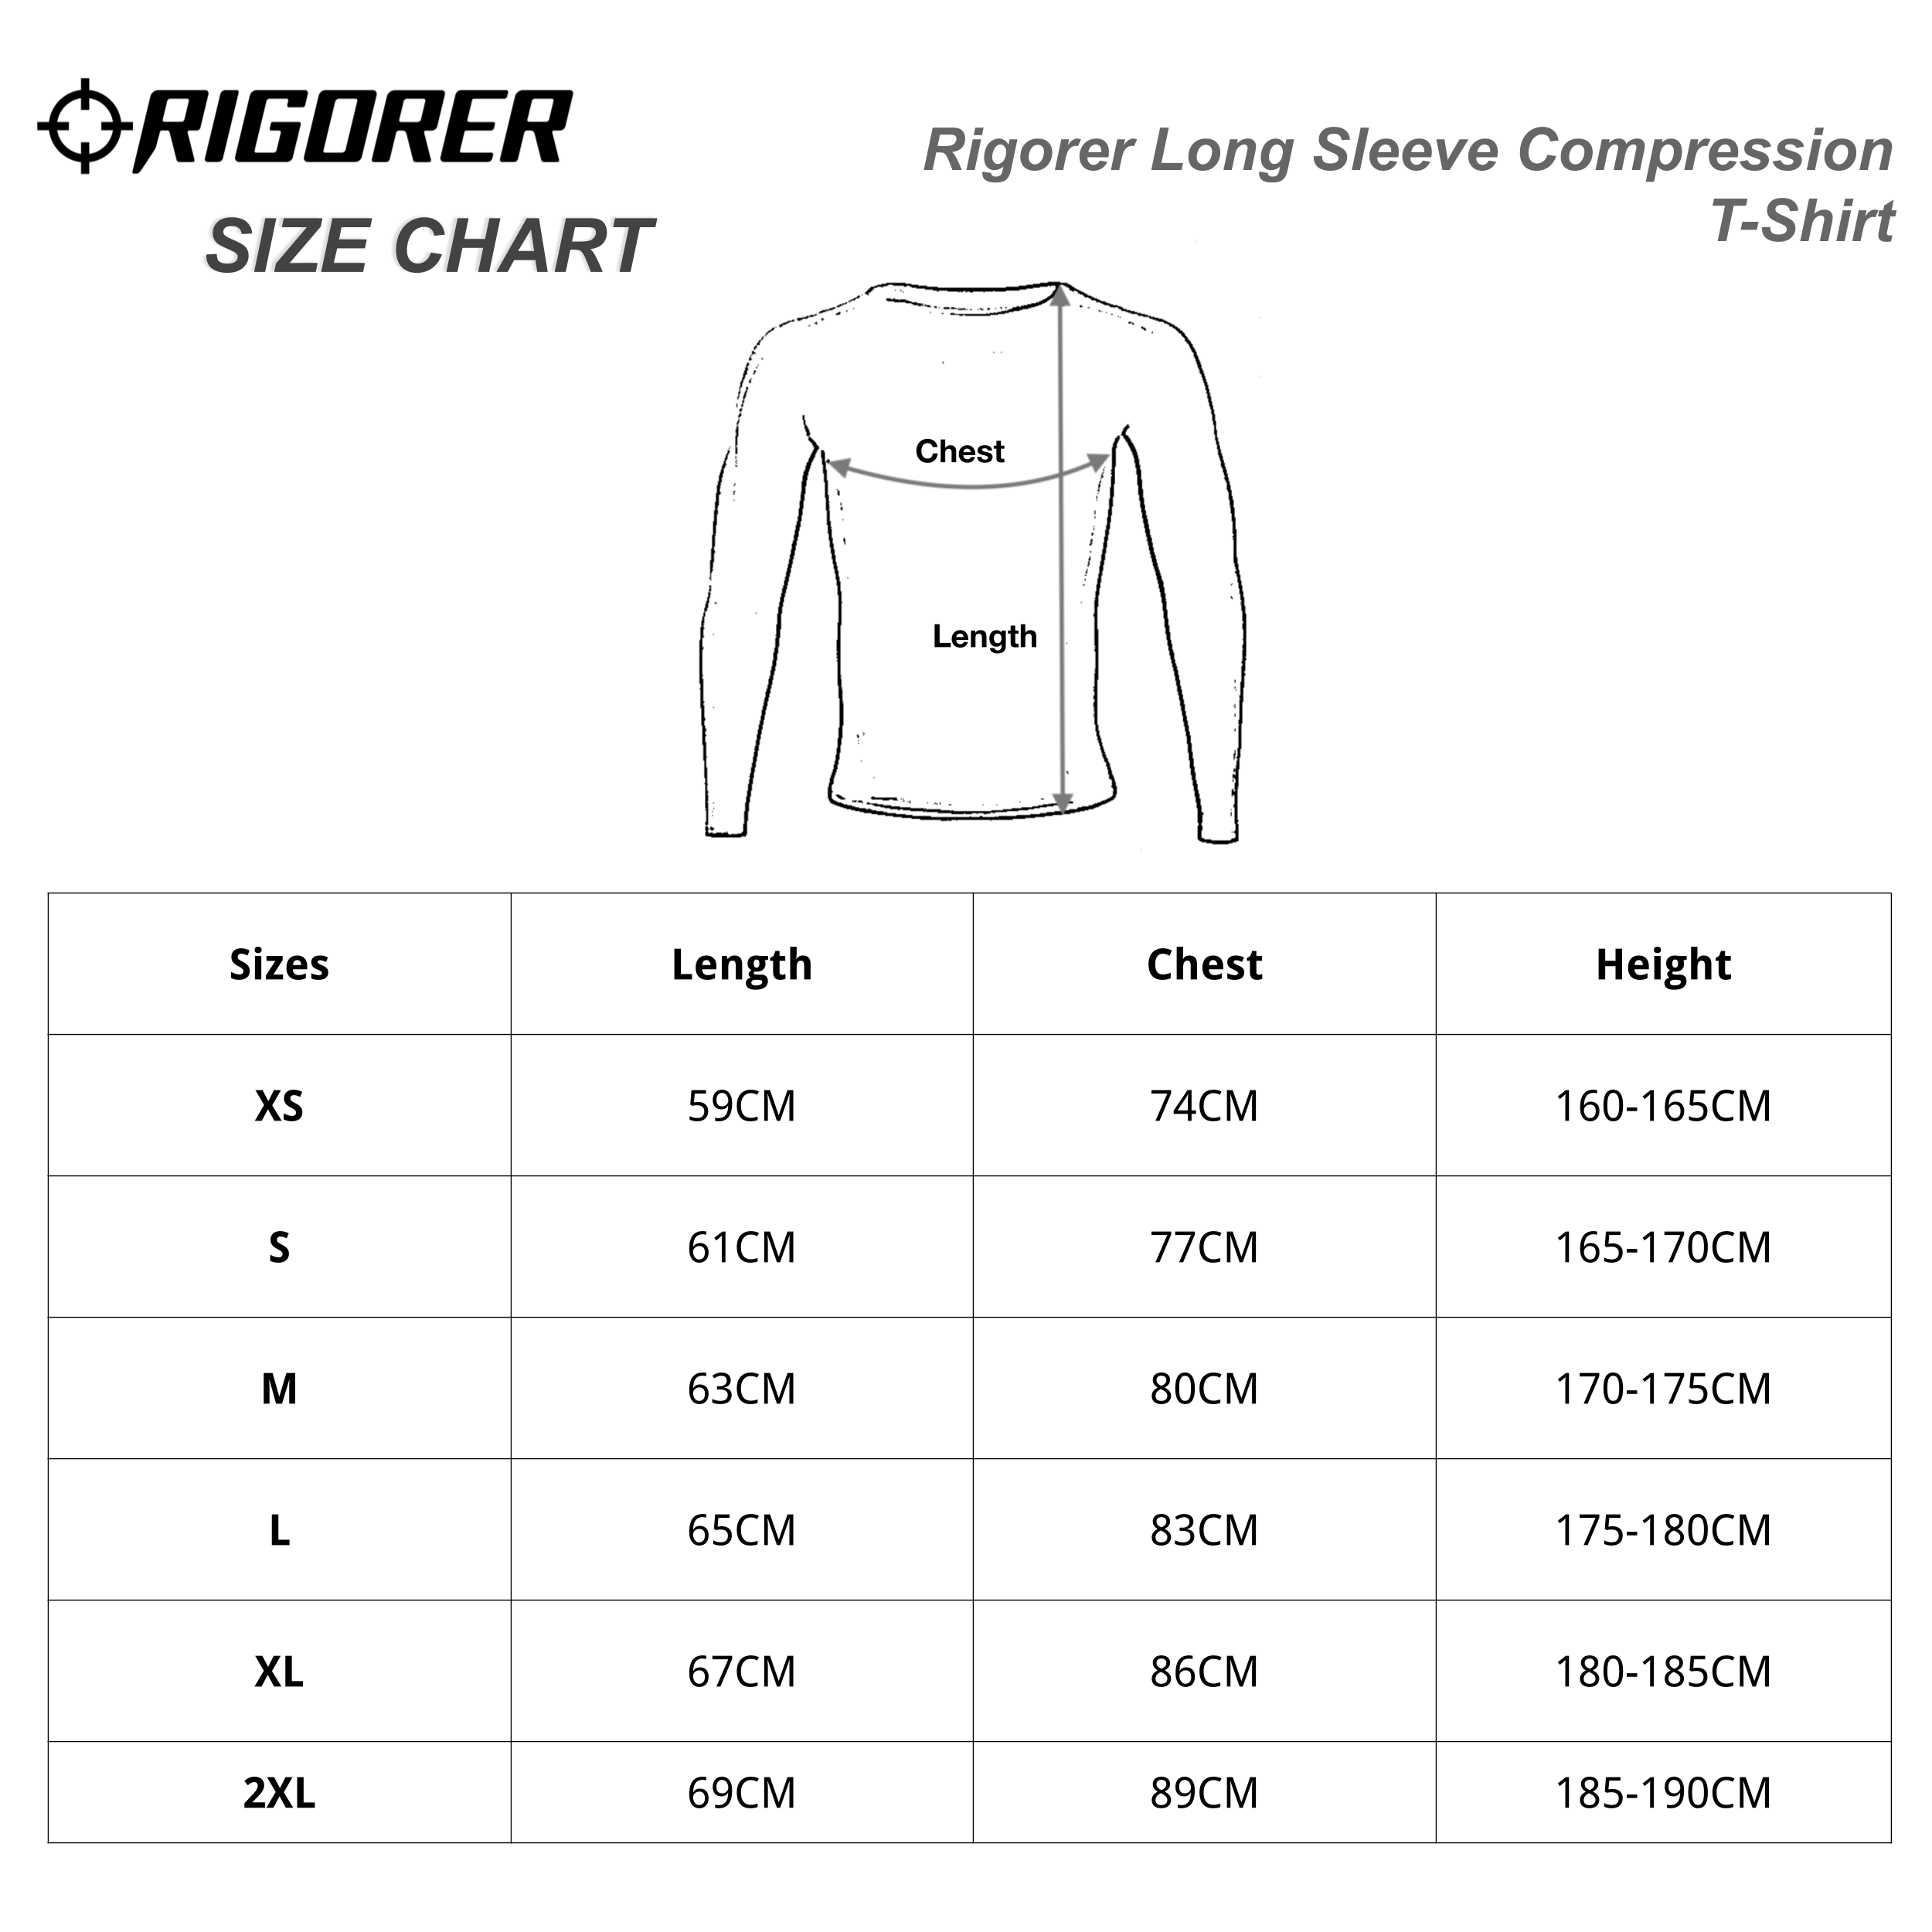 Rigorer Long Sleeve Compression T-Shirt Sizing Chart